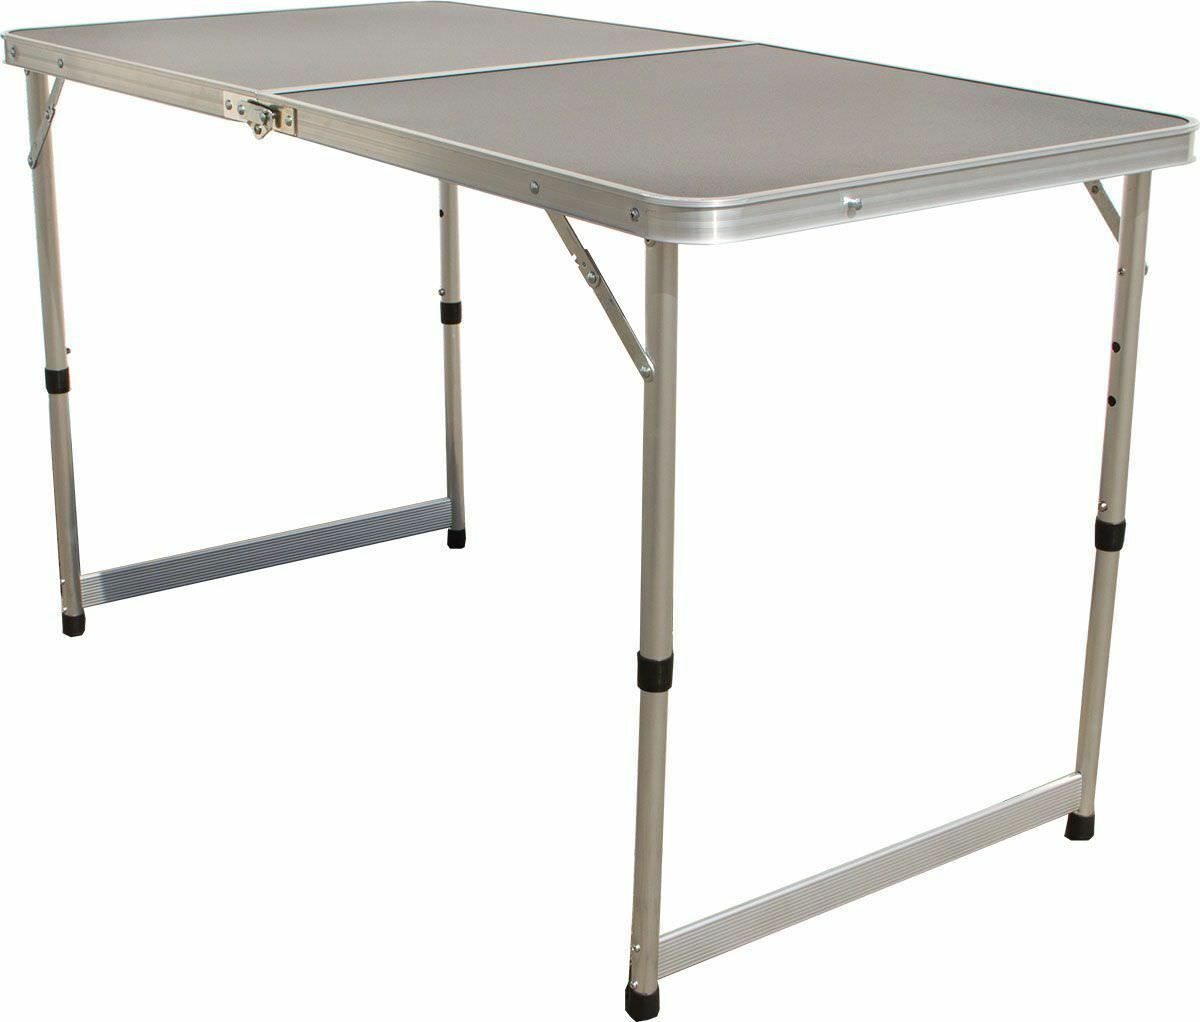 Table Pliante Multi Usage Table Pliante De 120x60 Cm Multi Usage Table Table De Pliante